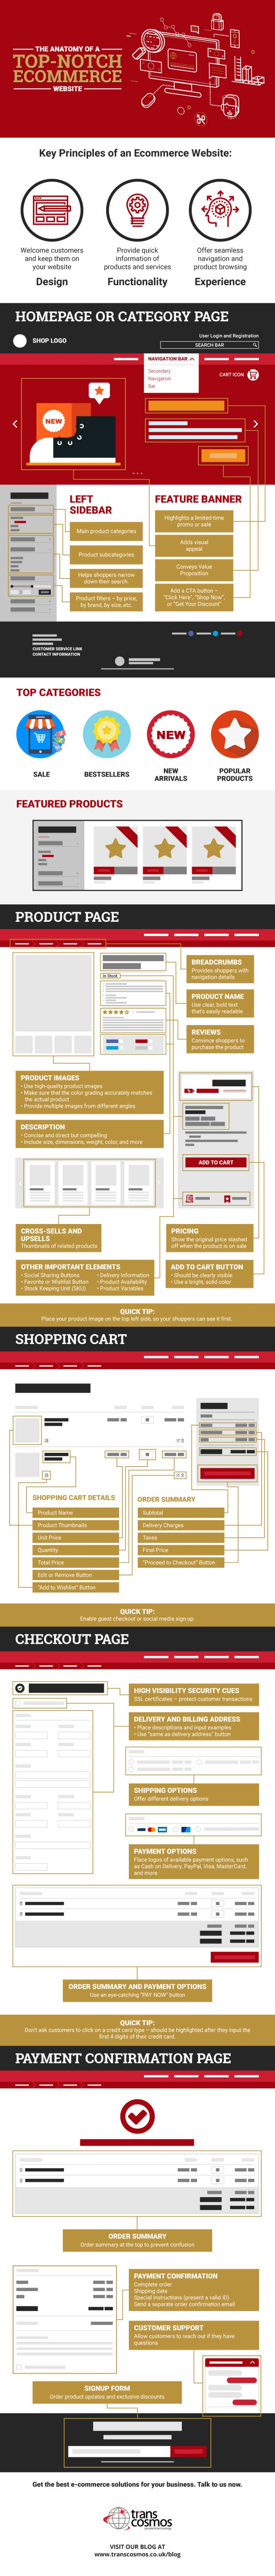 The Anatomy of a Top-Notch E-commerce Shop [Infographic]